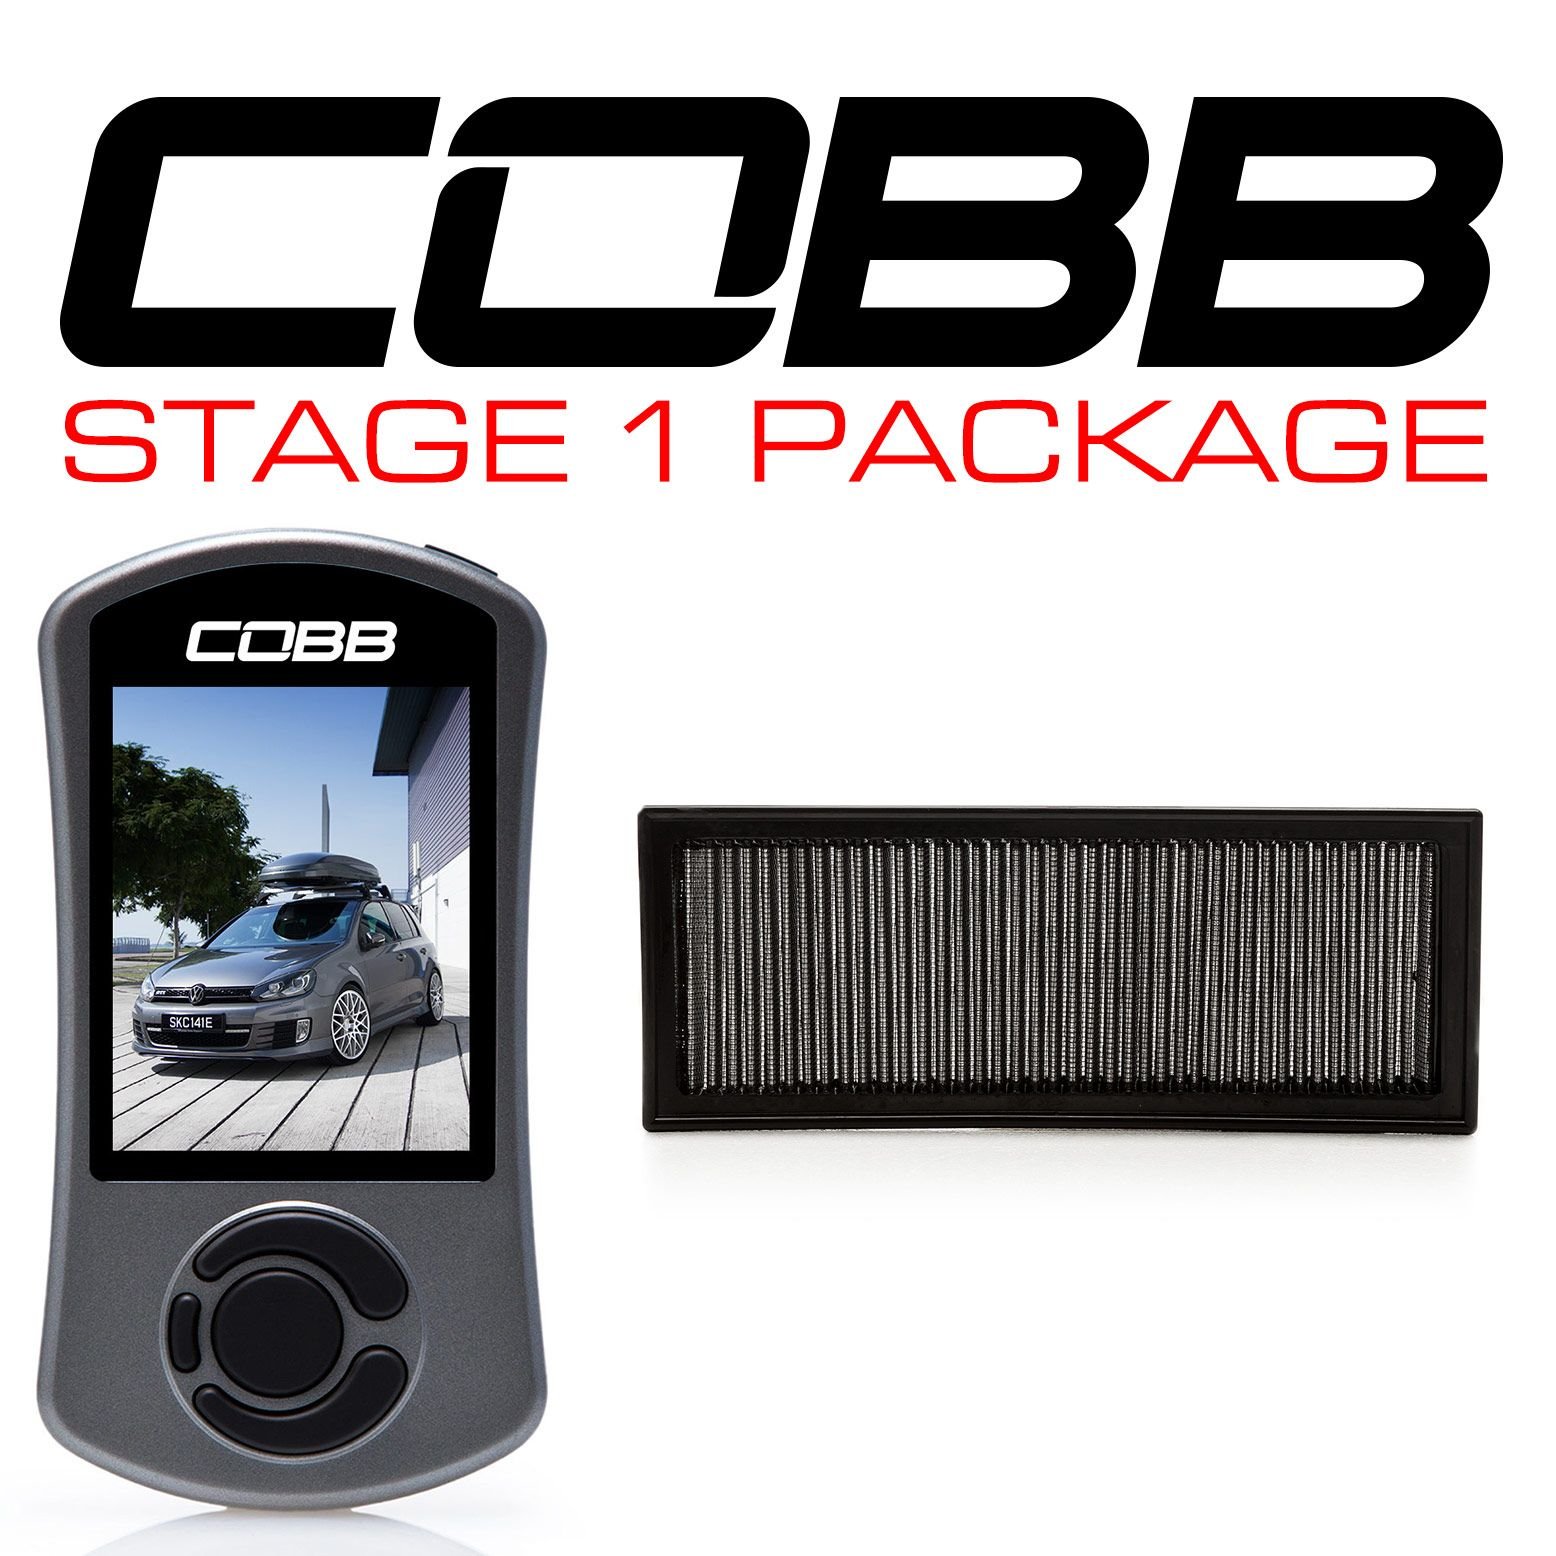 COBB AccessPORT V3 ECU Flash Tuner for 2010-14 VW Golf GTI [MK VI] AP3-VLK-001